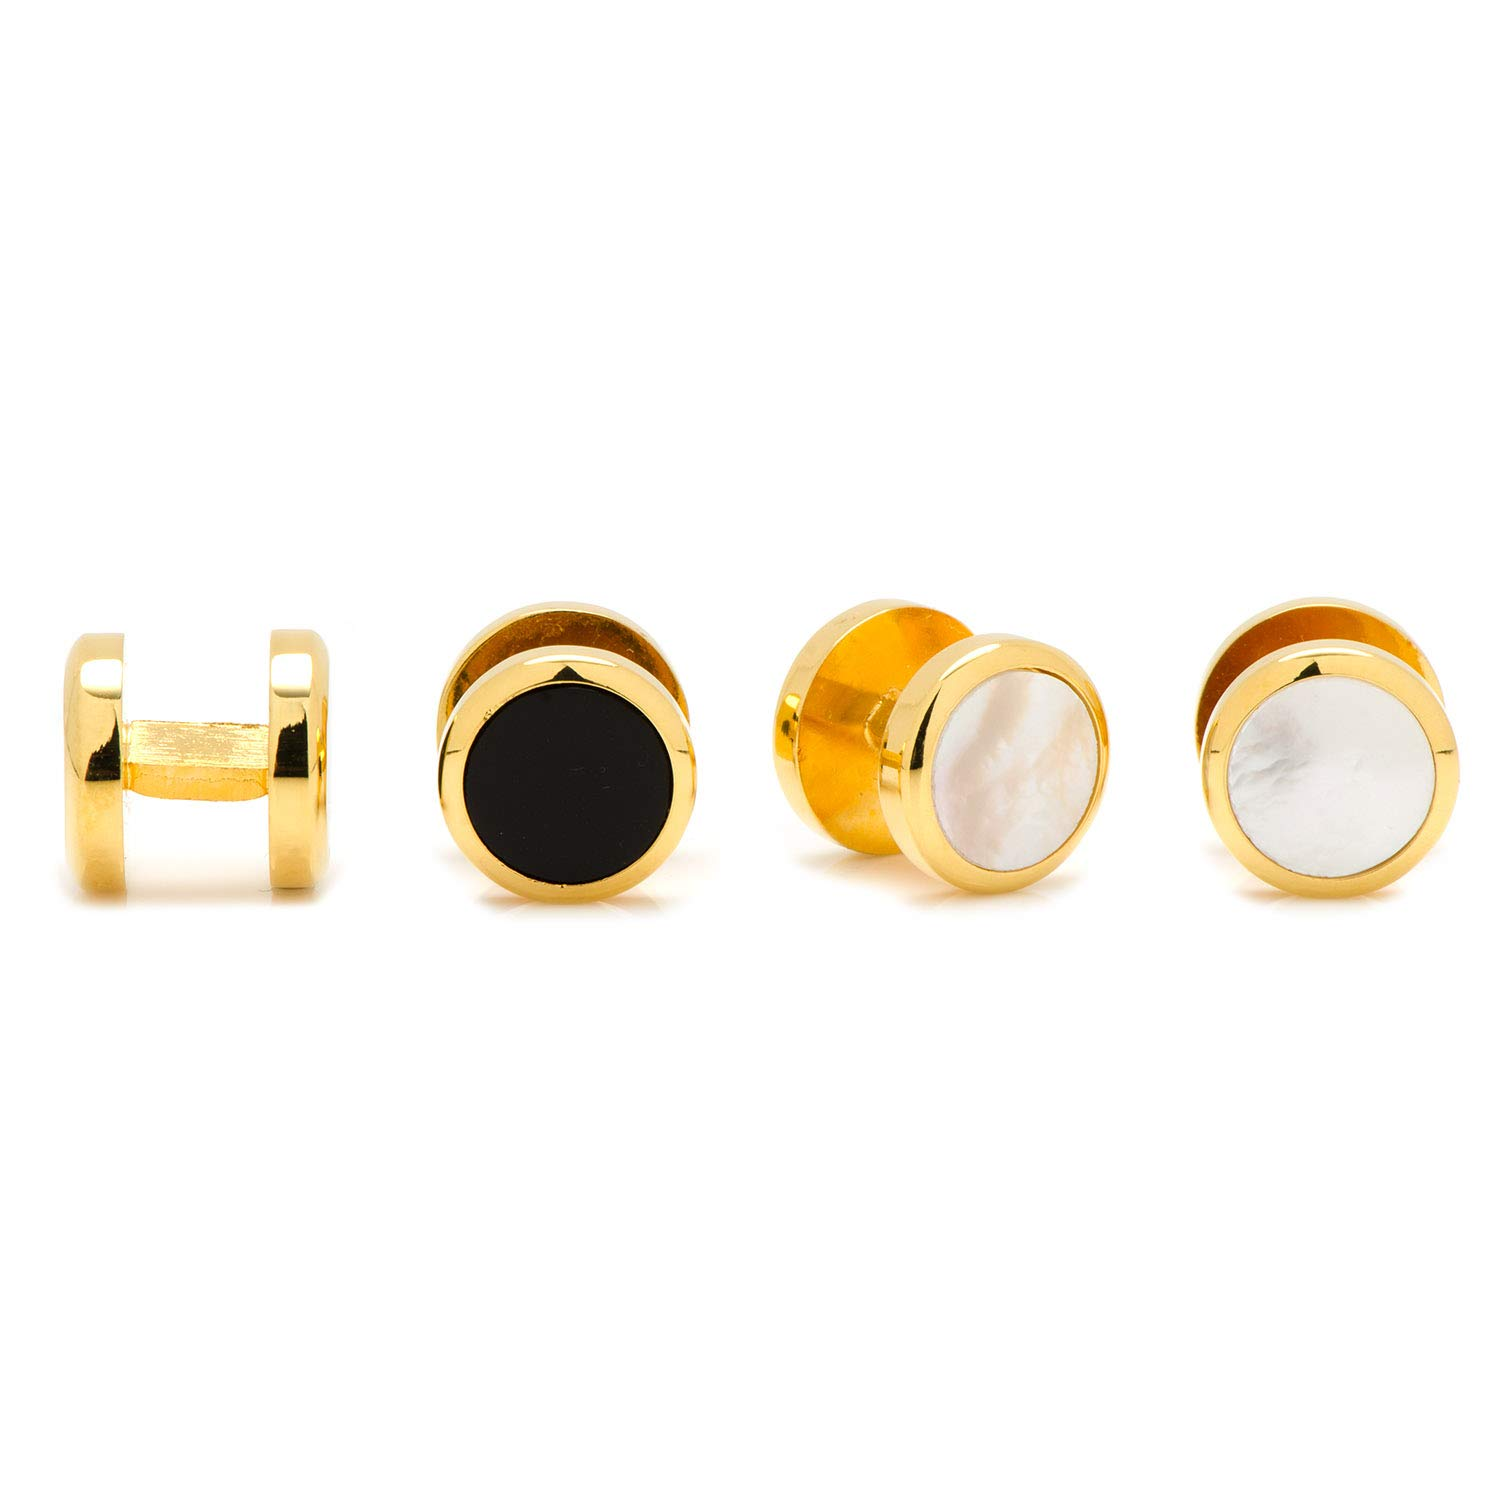 Ox and Bull Trading Co. Double Sided Gold Onyx and Mother of Pearl Round Studs